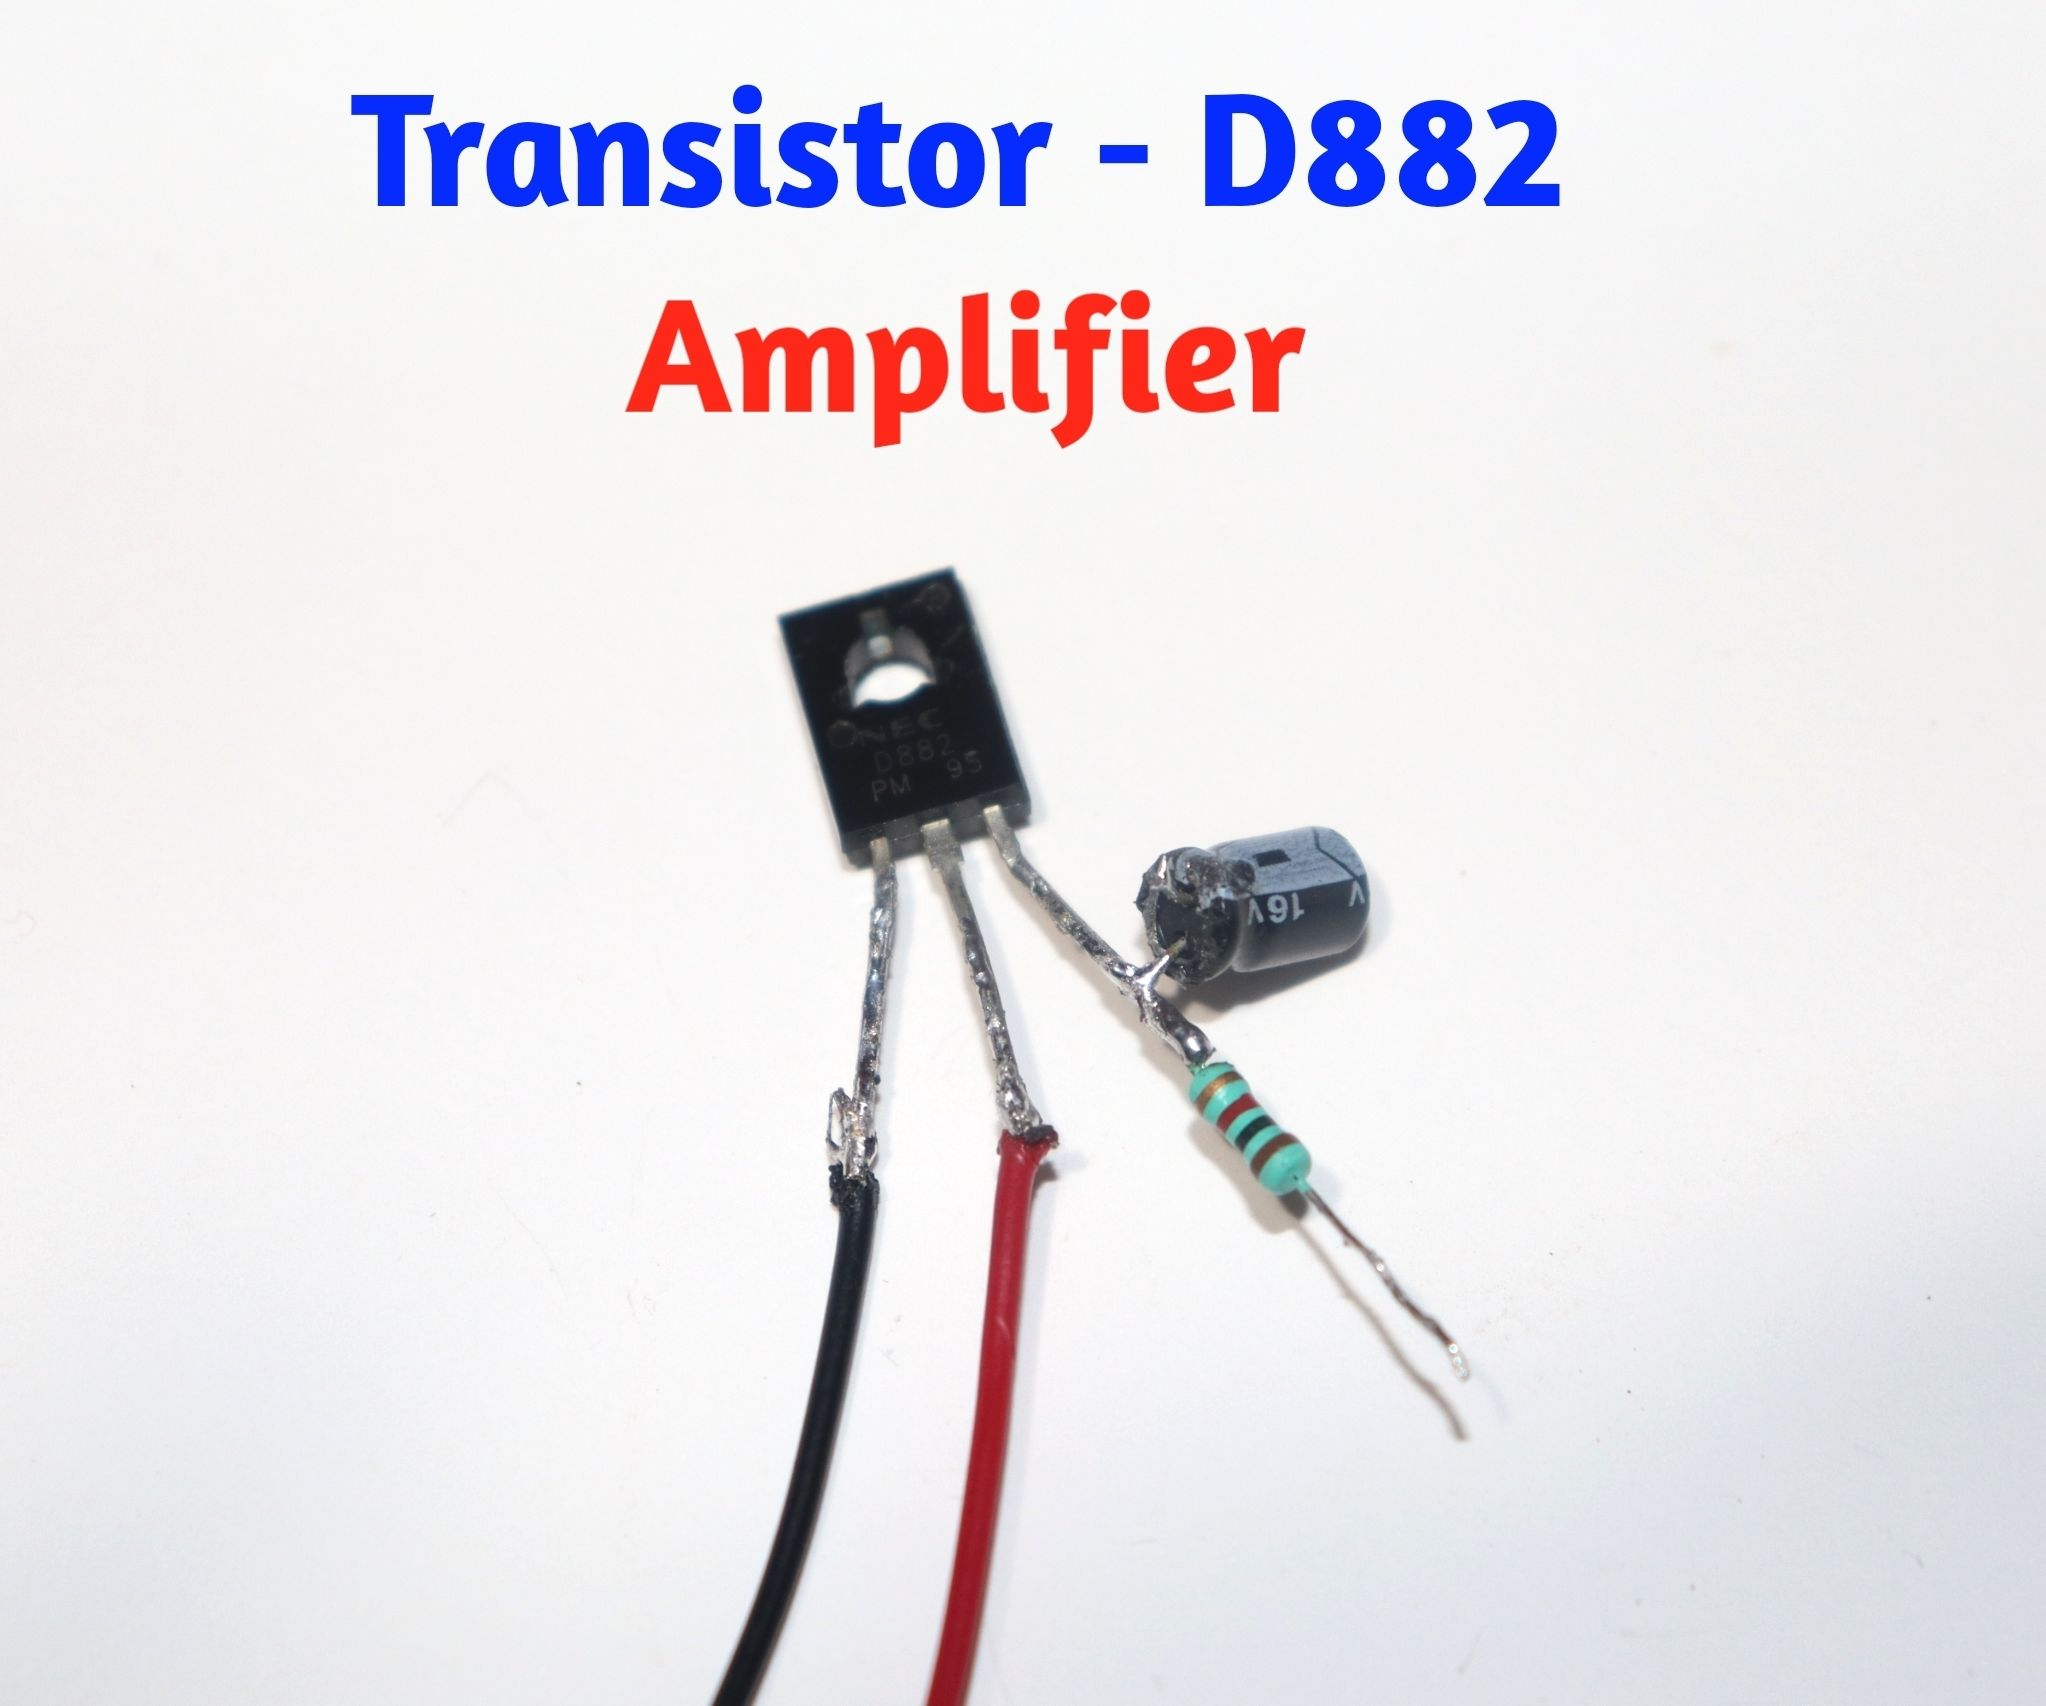 How to Make Audio Amplifier Using D882 Transistor